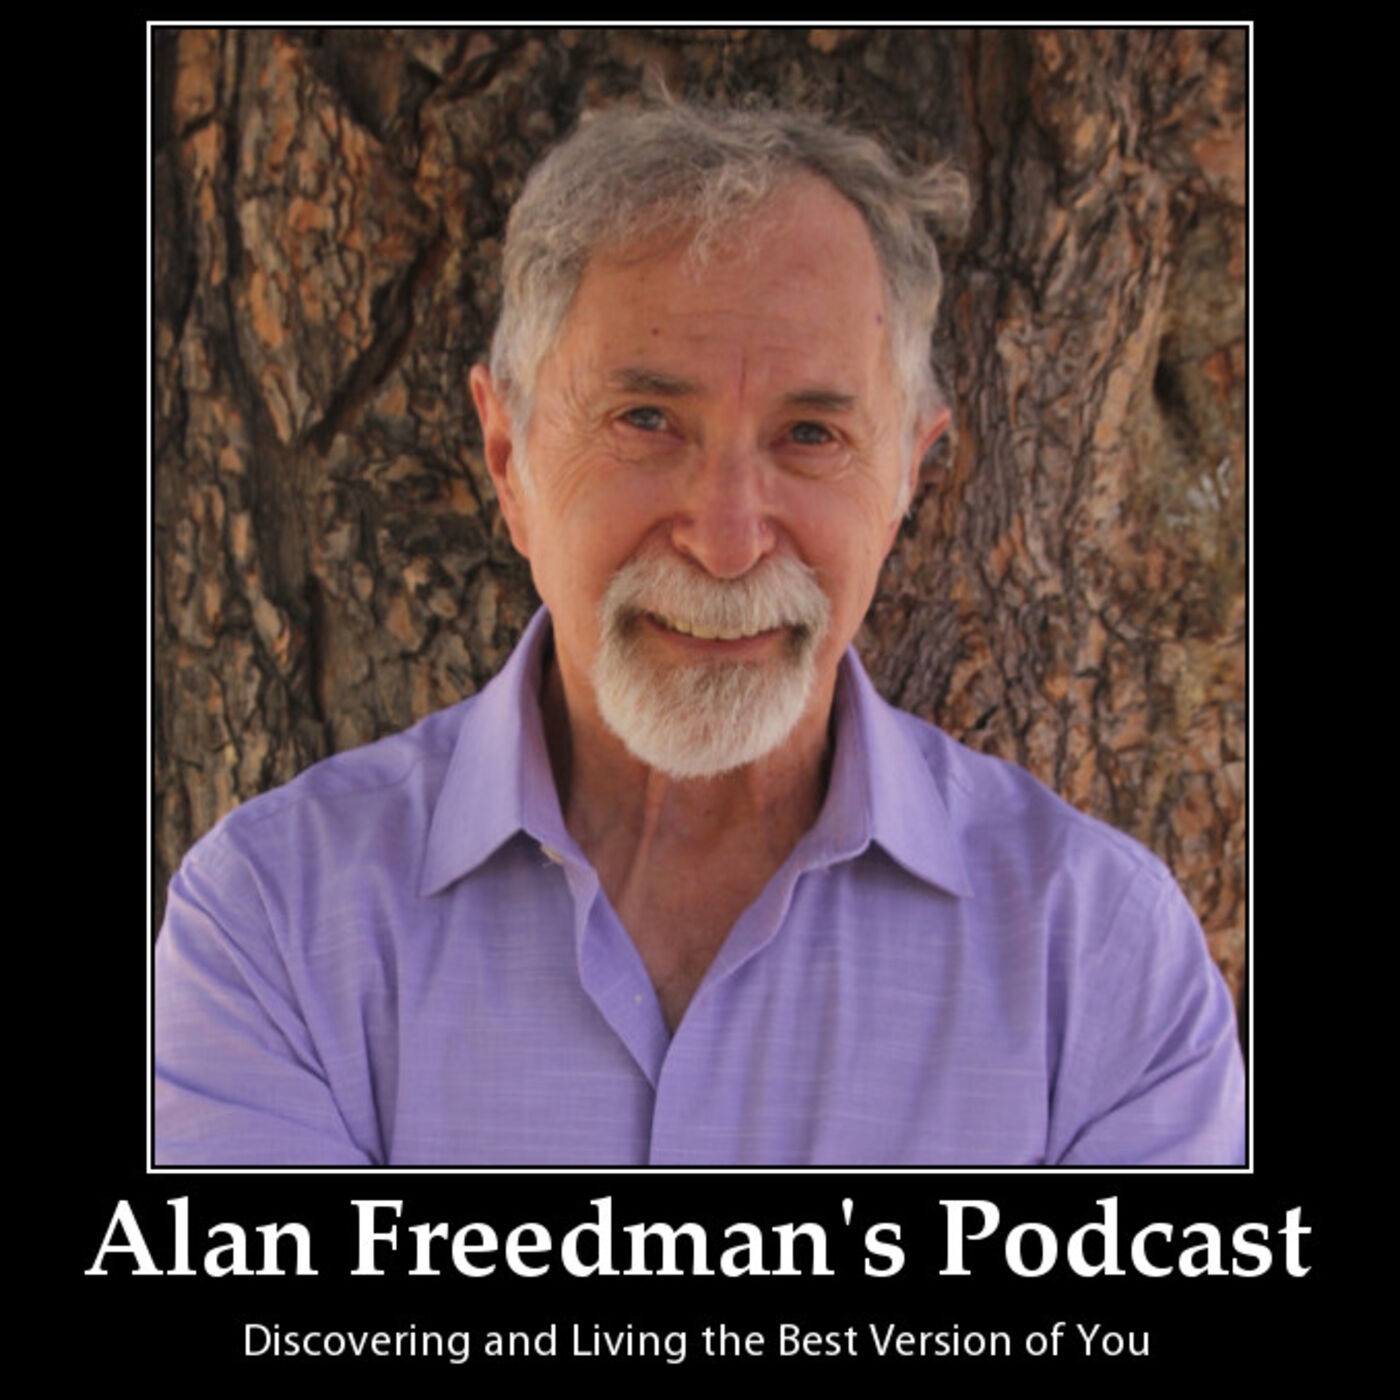 The Making of a Jewru! - Featuring Podcast Host Alan Freedman